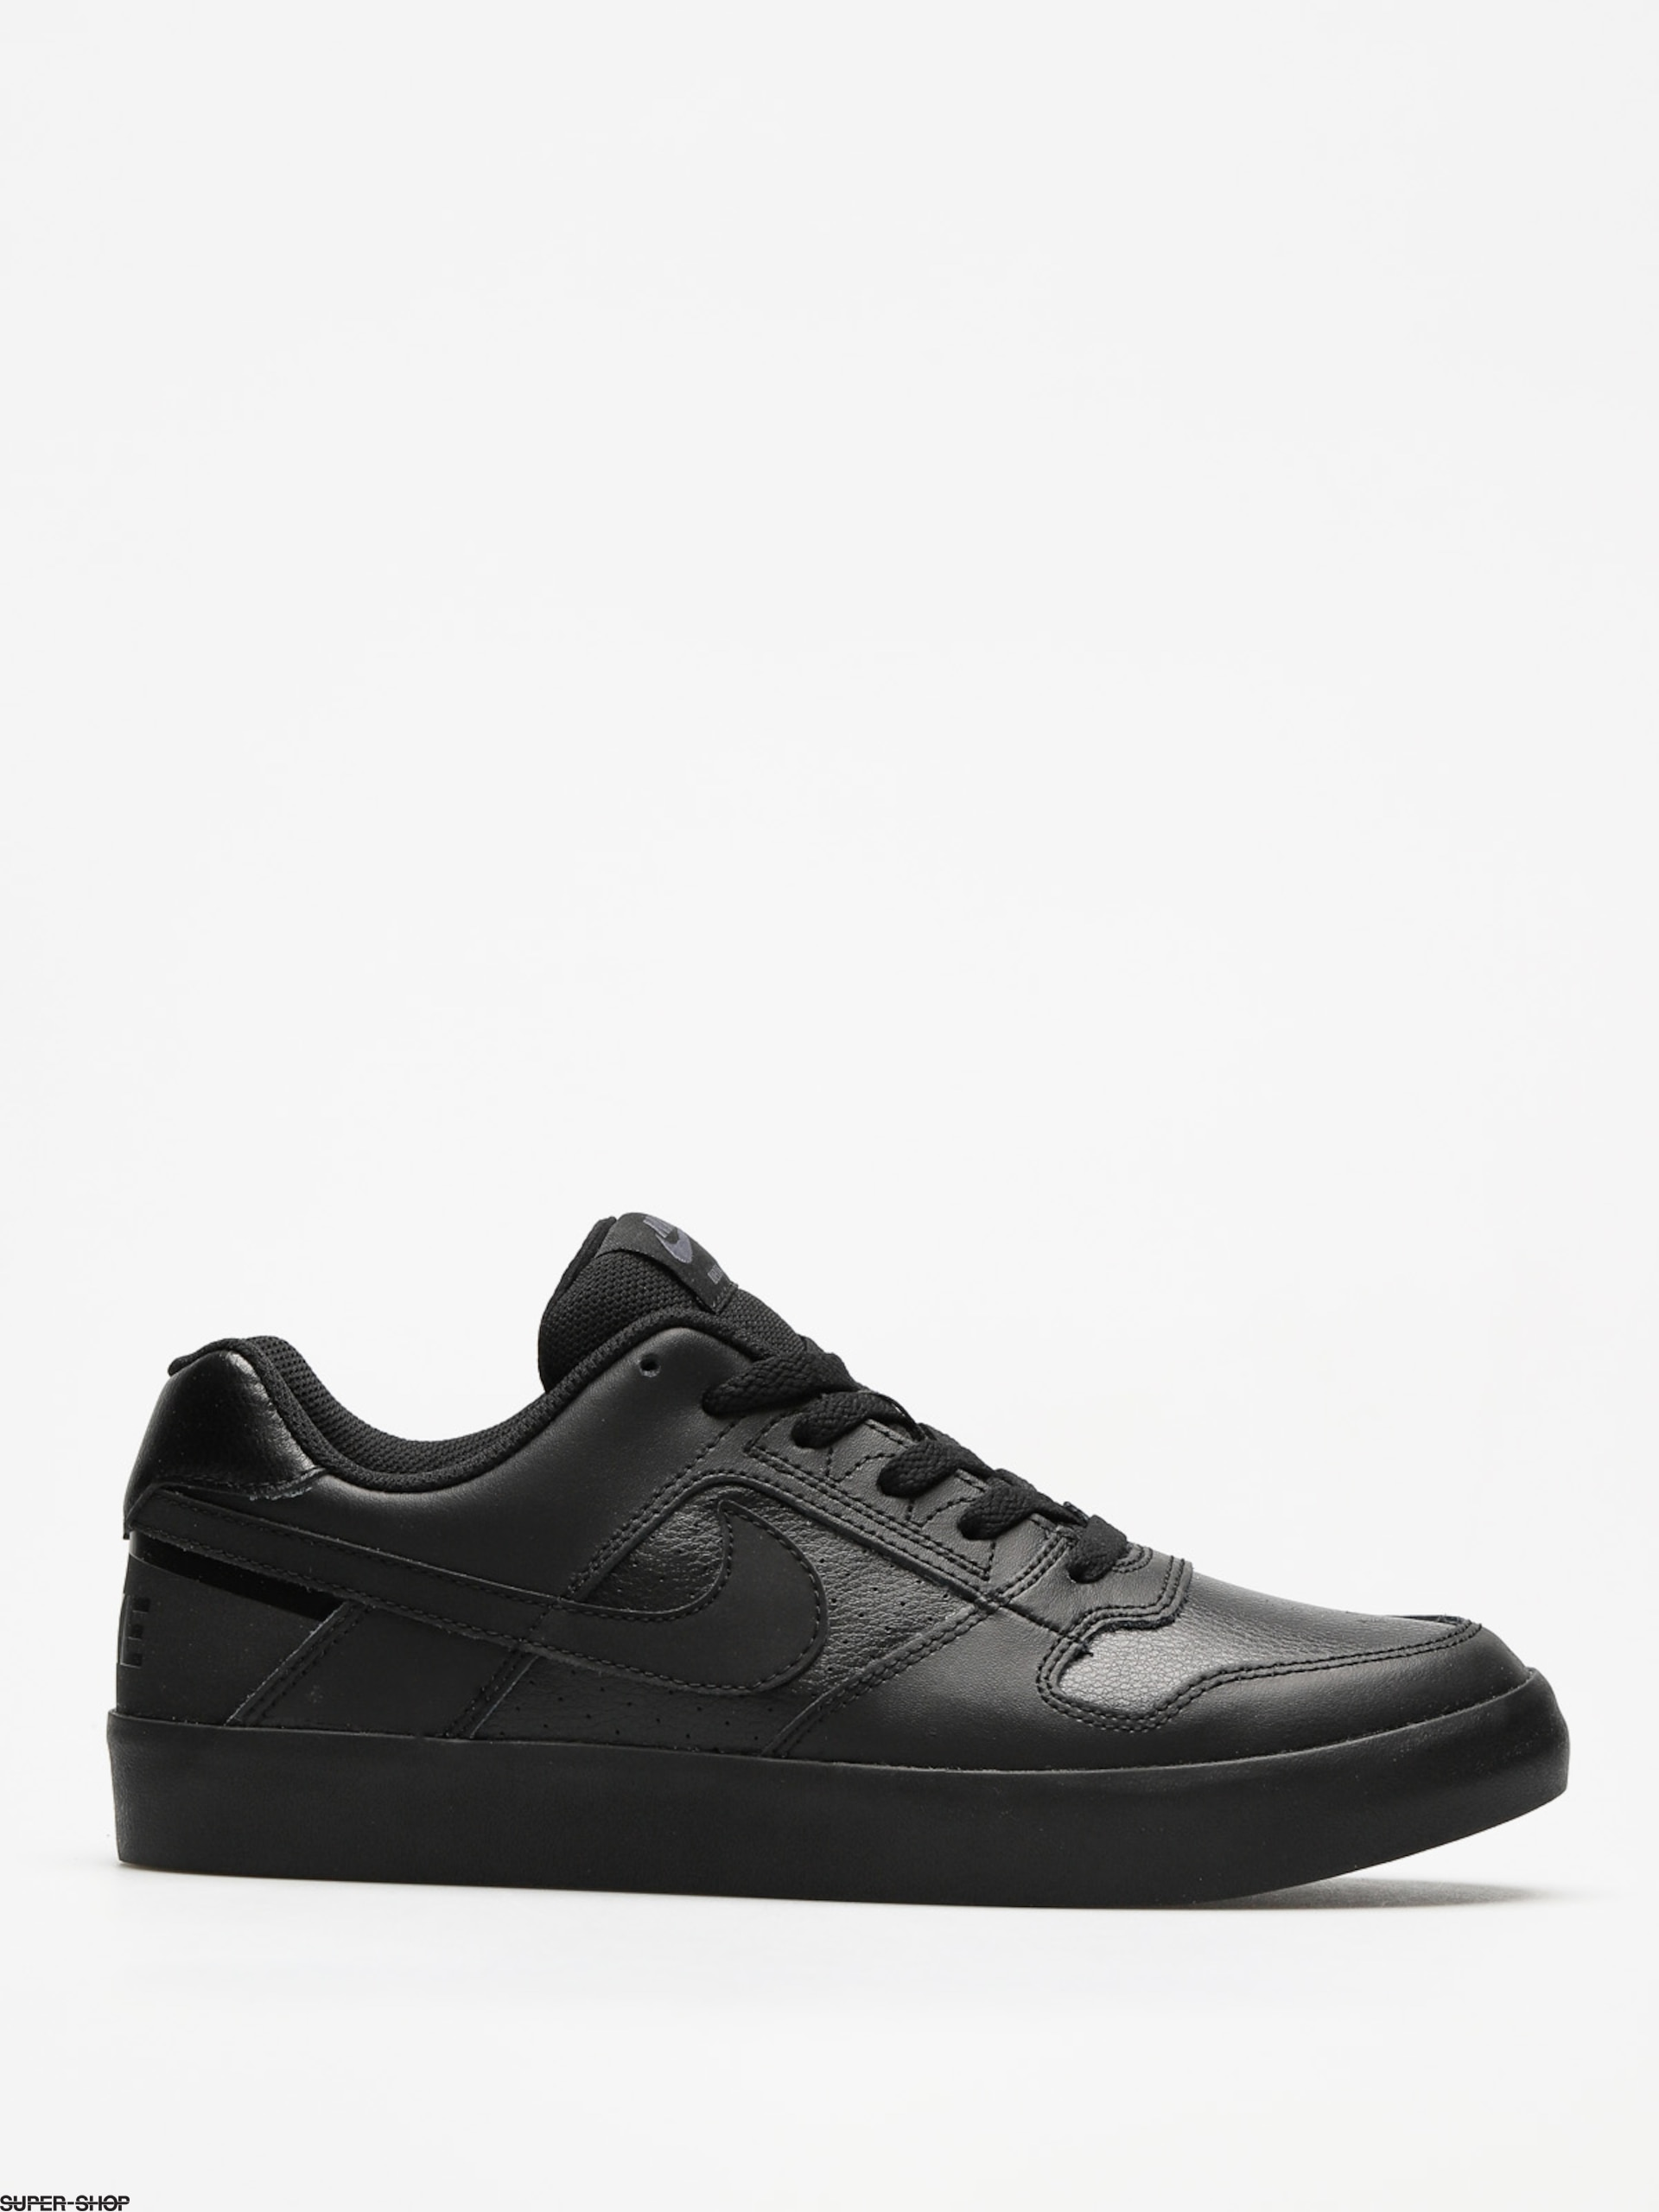 7525409247ceb Nike SB Shoes Sb Delta Force Vulc (black/black anthracite)